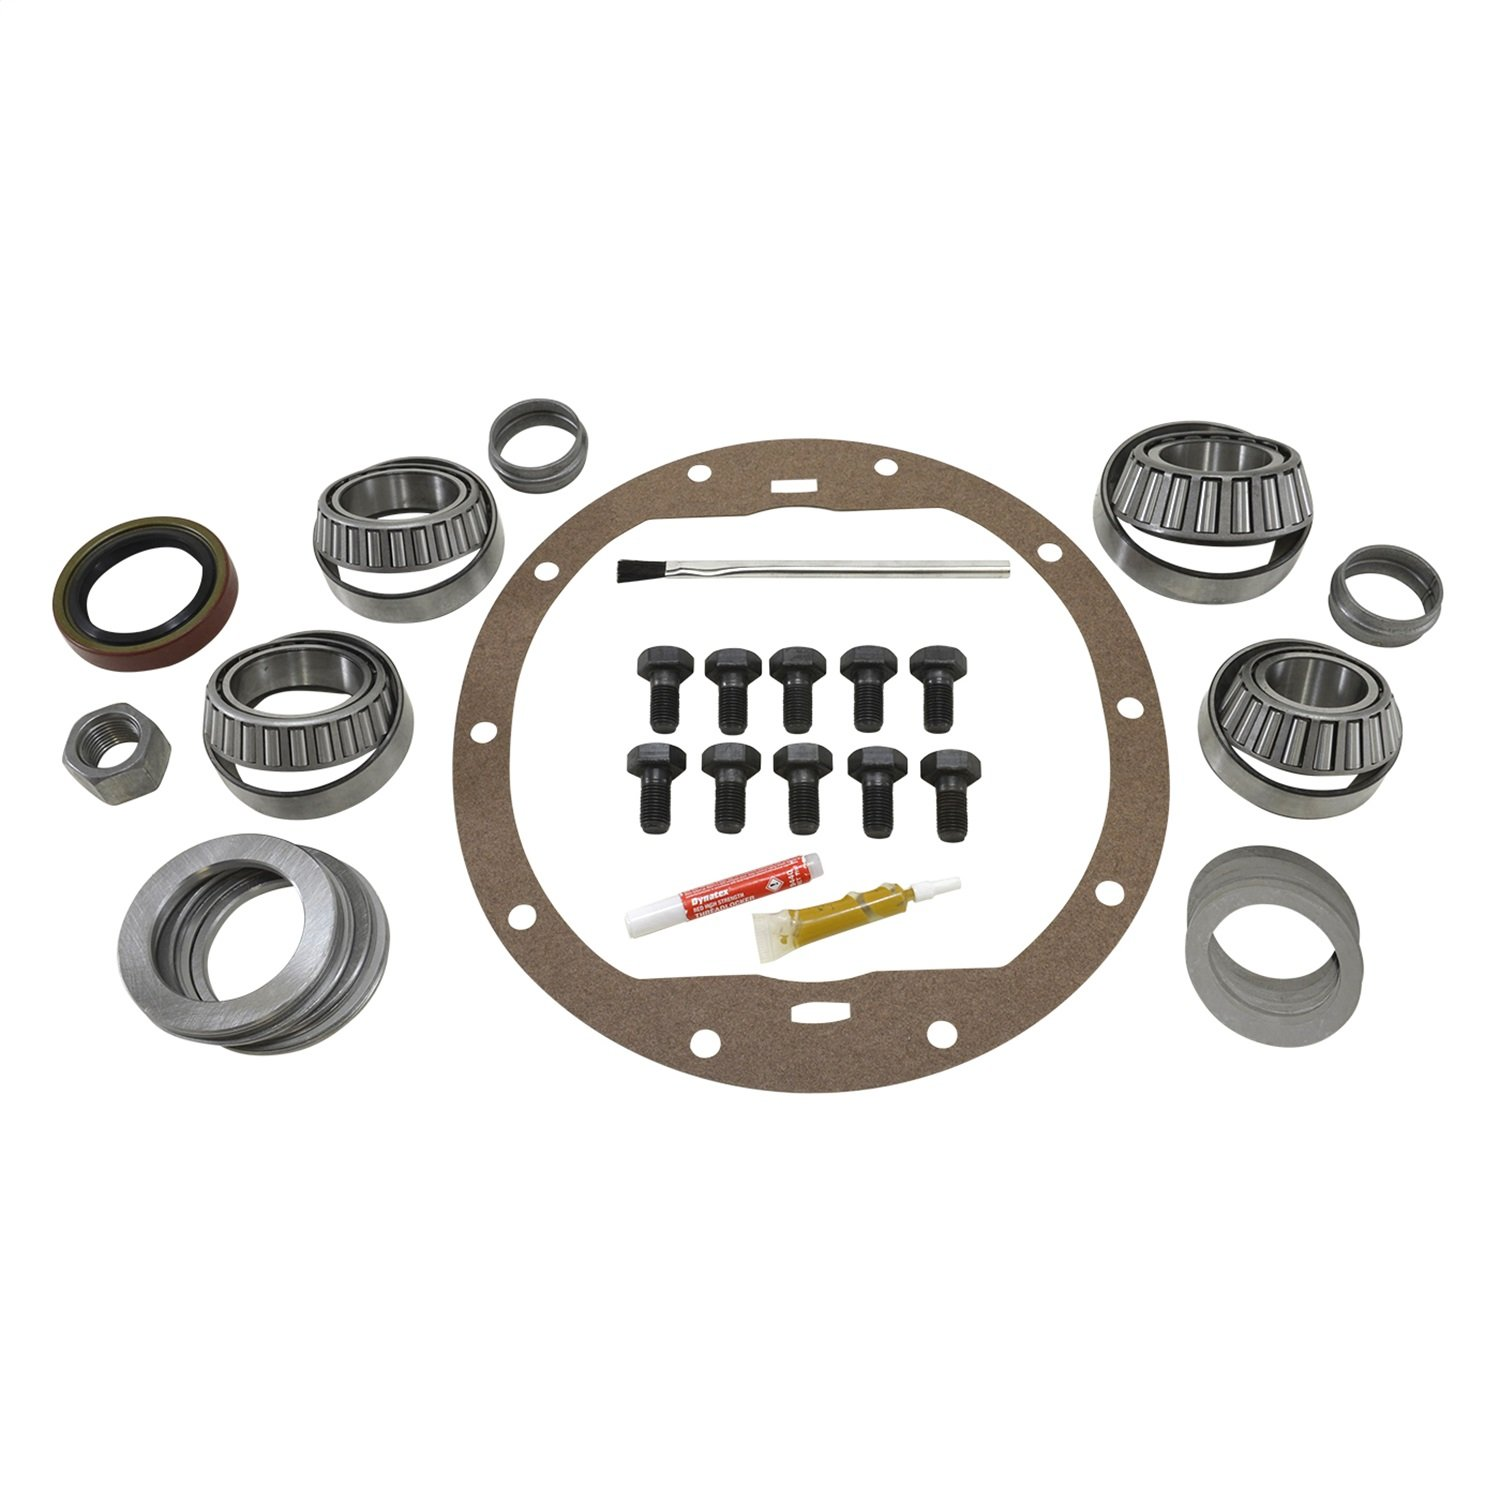 Yukon YKGM8.5-HD Master Overhaul Kit for GM 8.5'' Differential